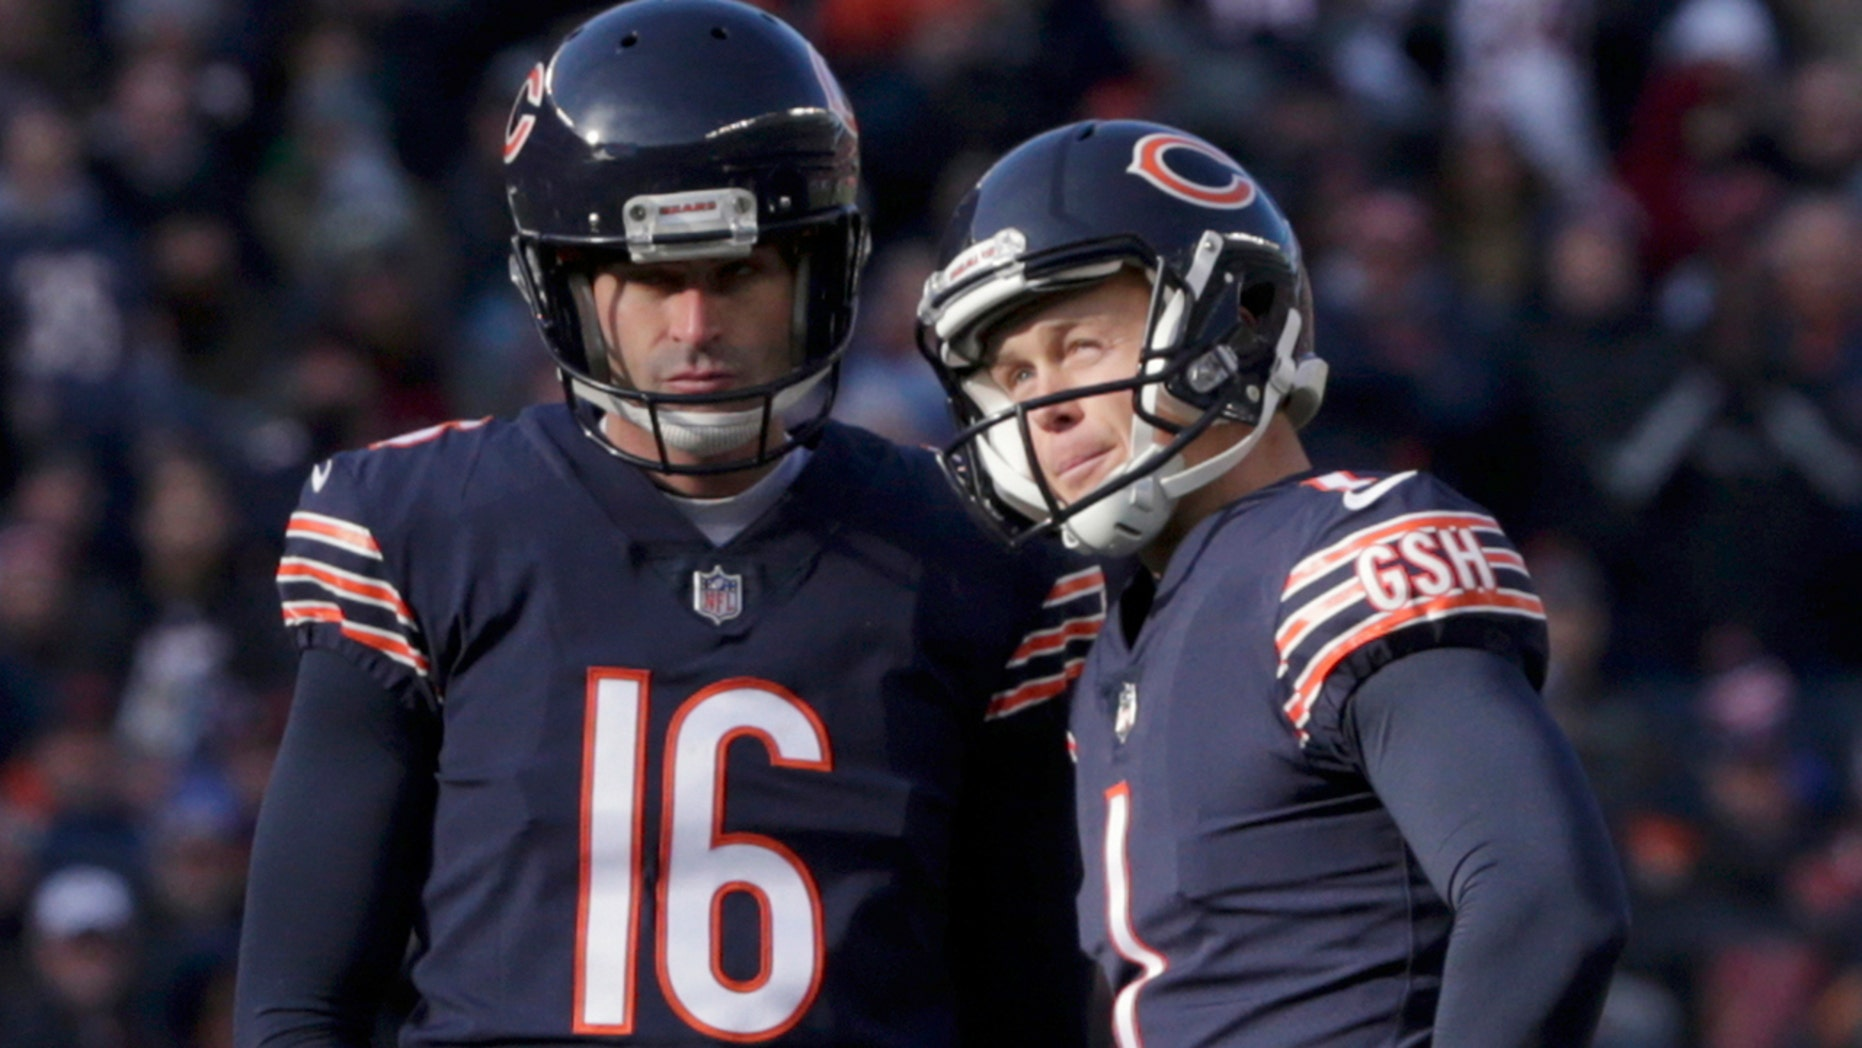 Chicago Bears kicker Cody Parkey (1) reacts as he talks to holder Pat O'Donnell (16) after missing a field goal during the second half of an NFL football game against the Detroit Lions Sunday, Nov. 11, 2018, in Chicago.